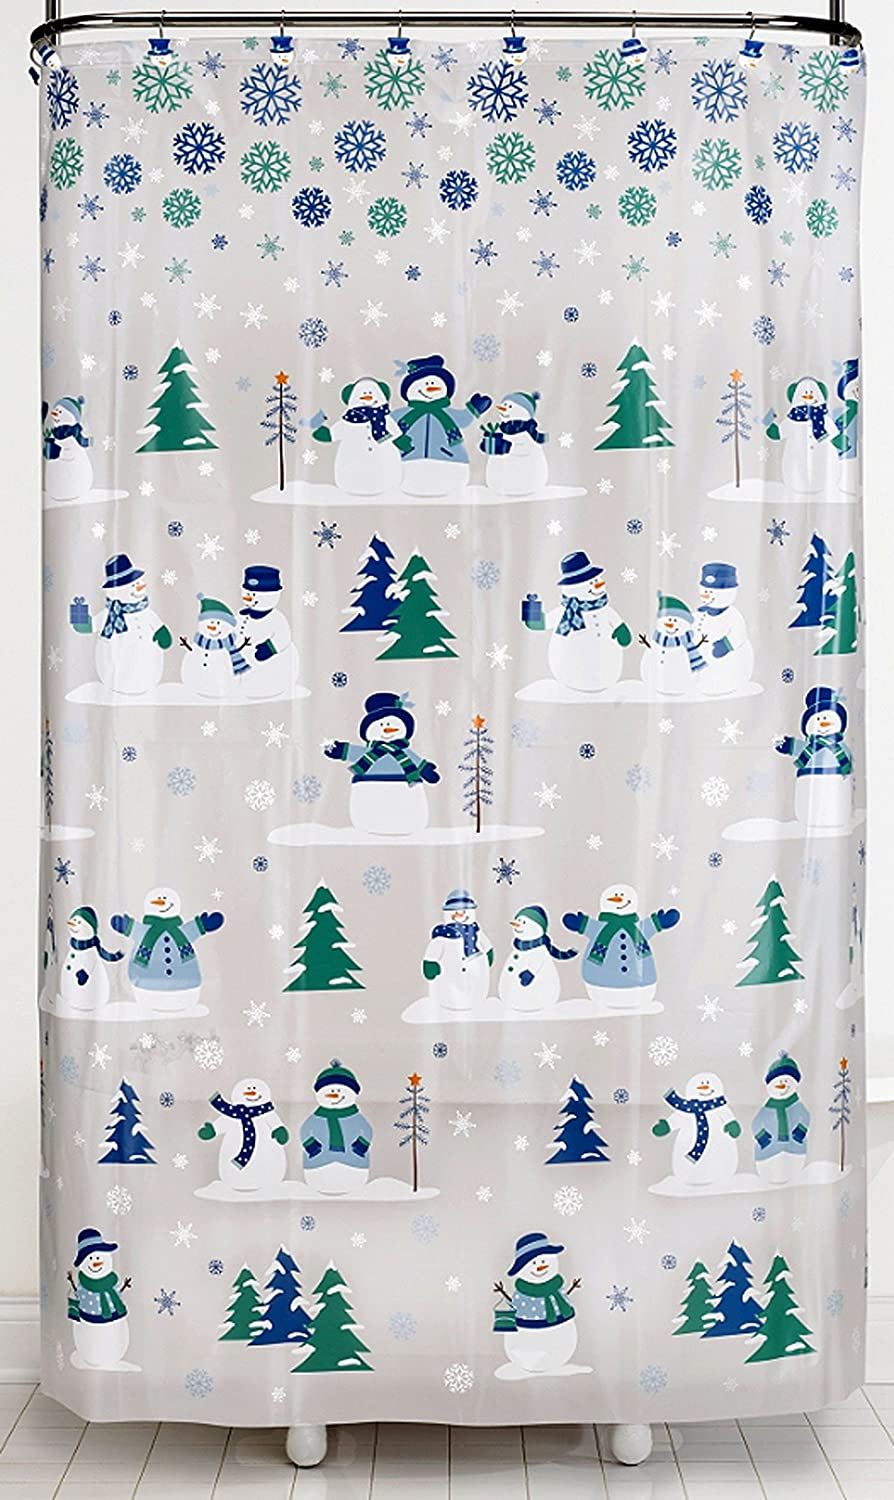 Snowman Shower Curtain Shop Everything Log Homes